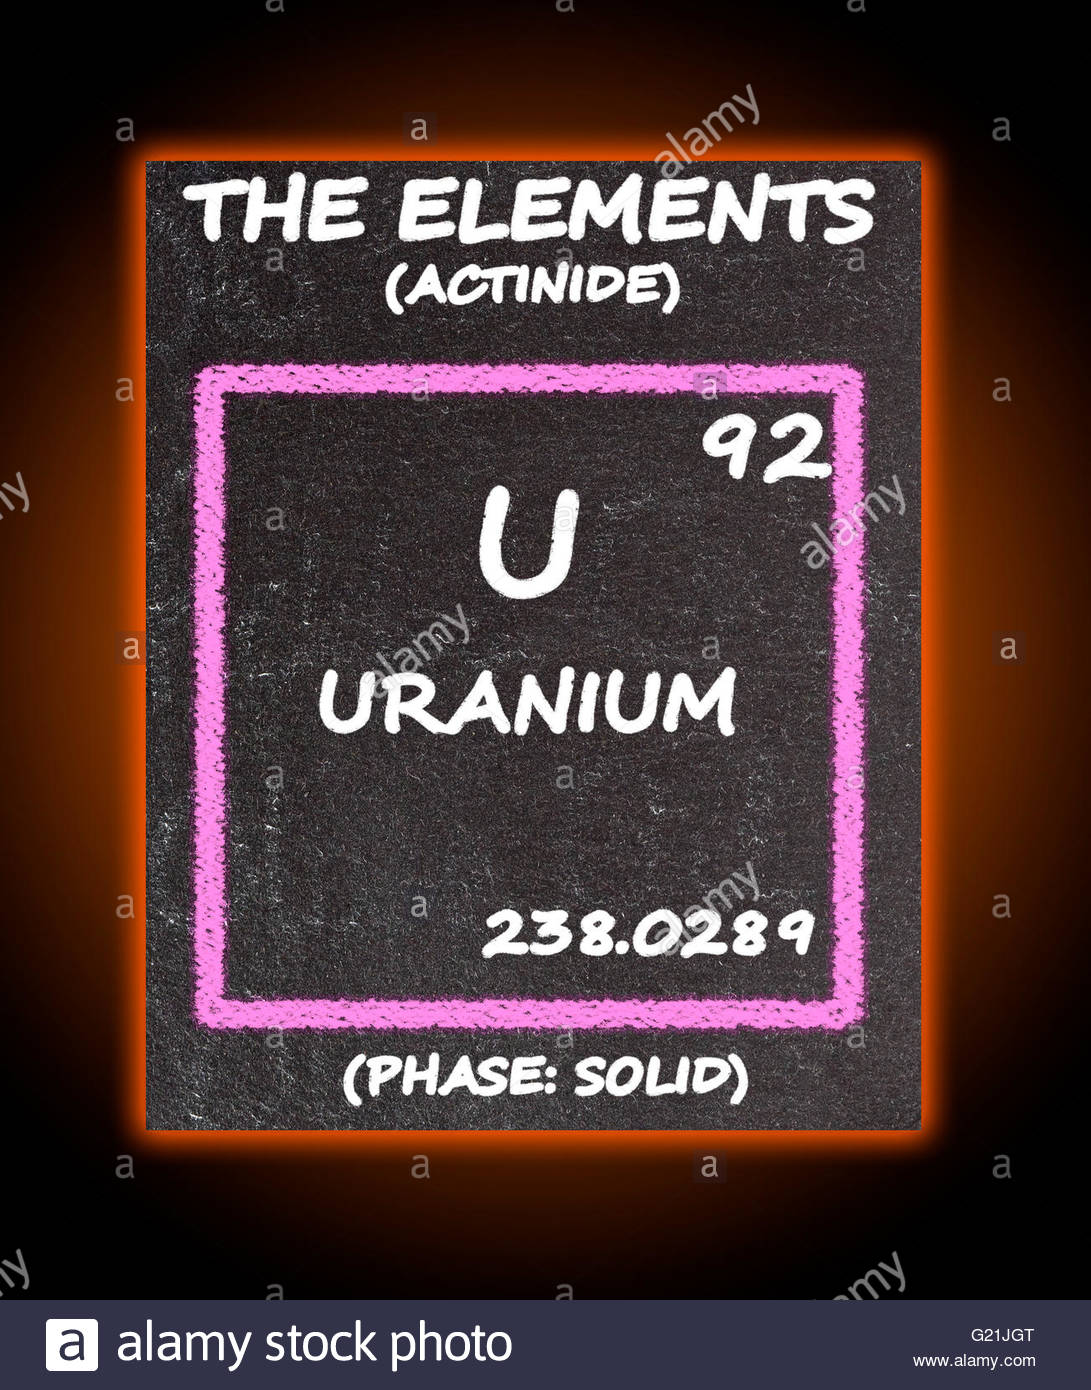 Uranium details from the periodic table stock photo royalty free uranium details from the periodic table urtaz Image collections